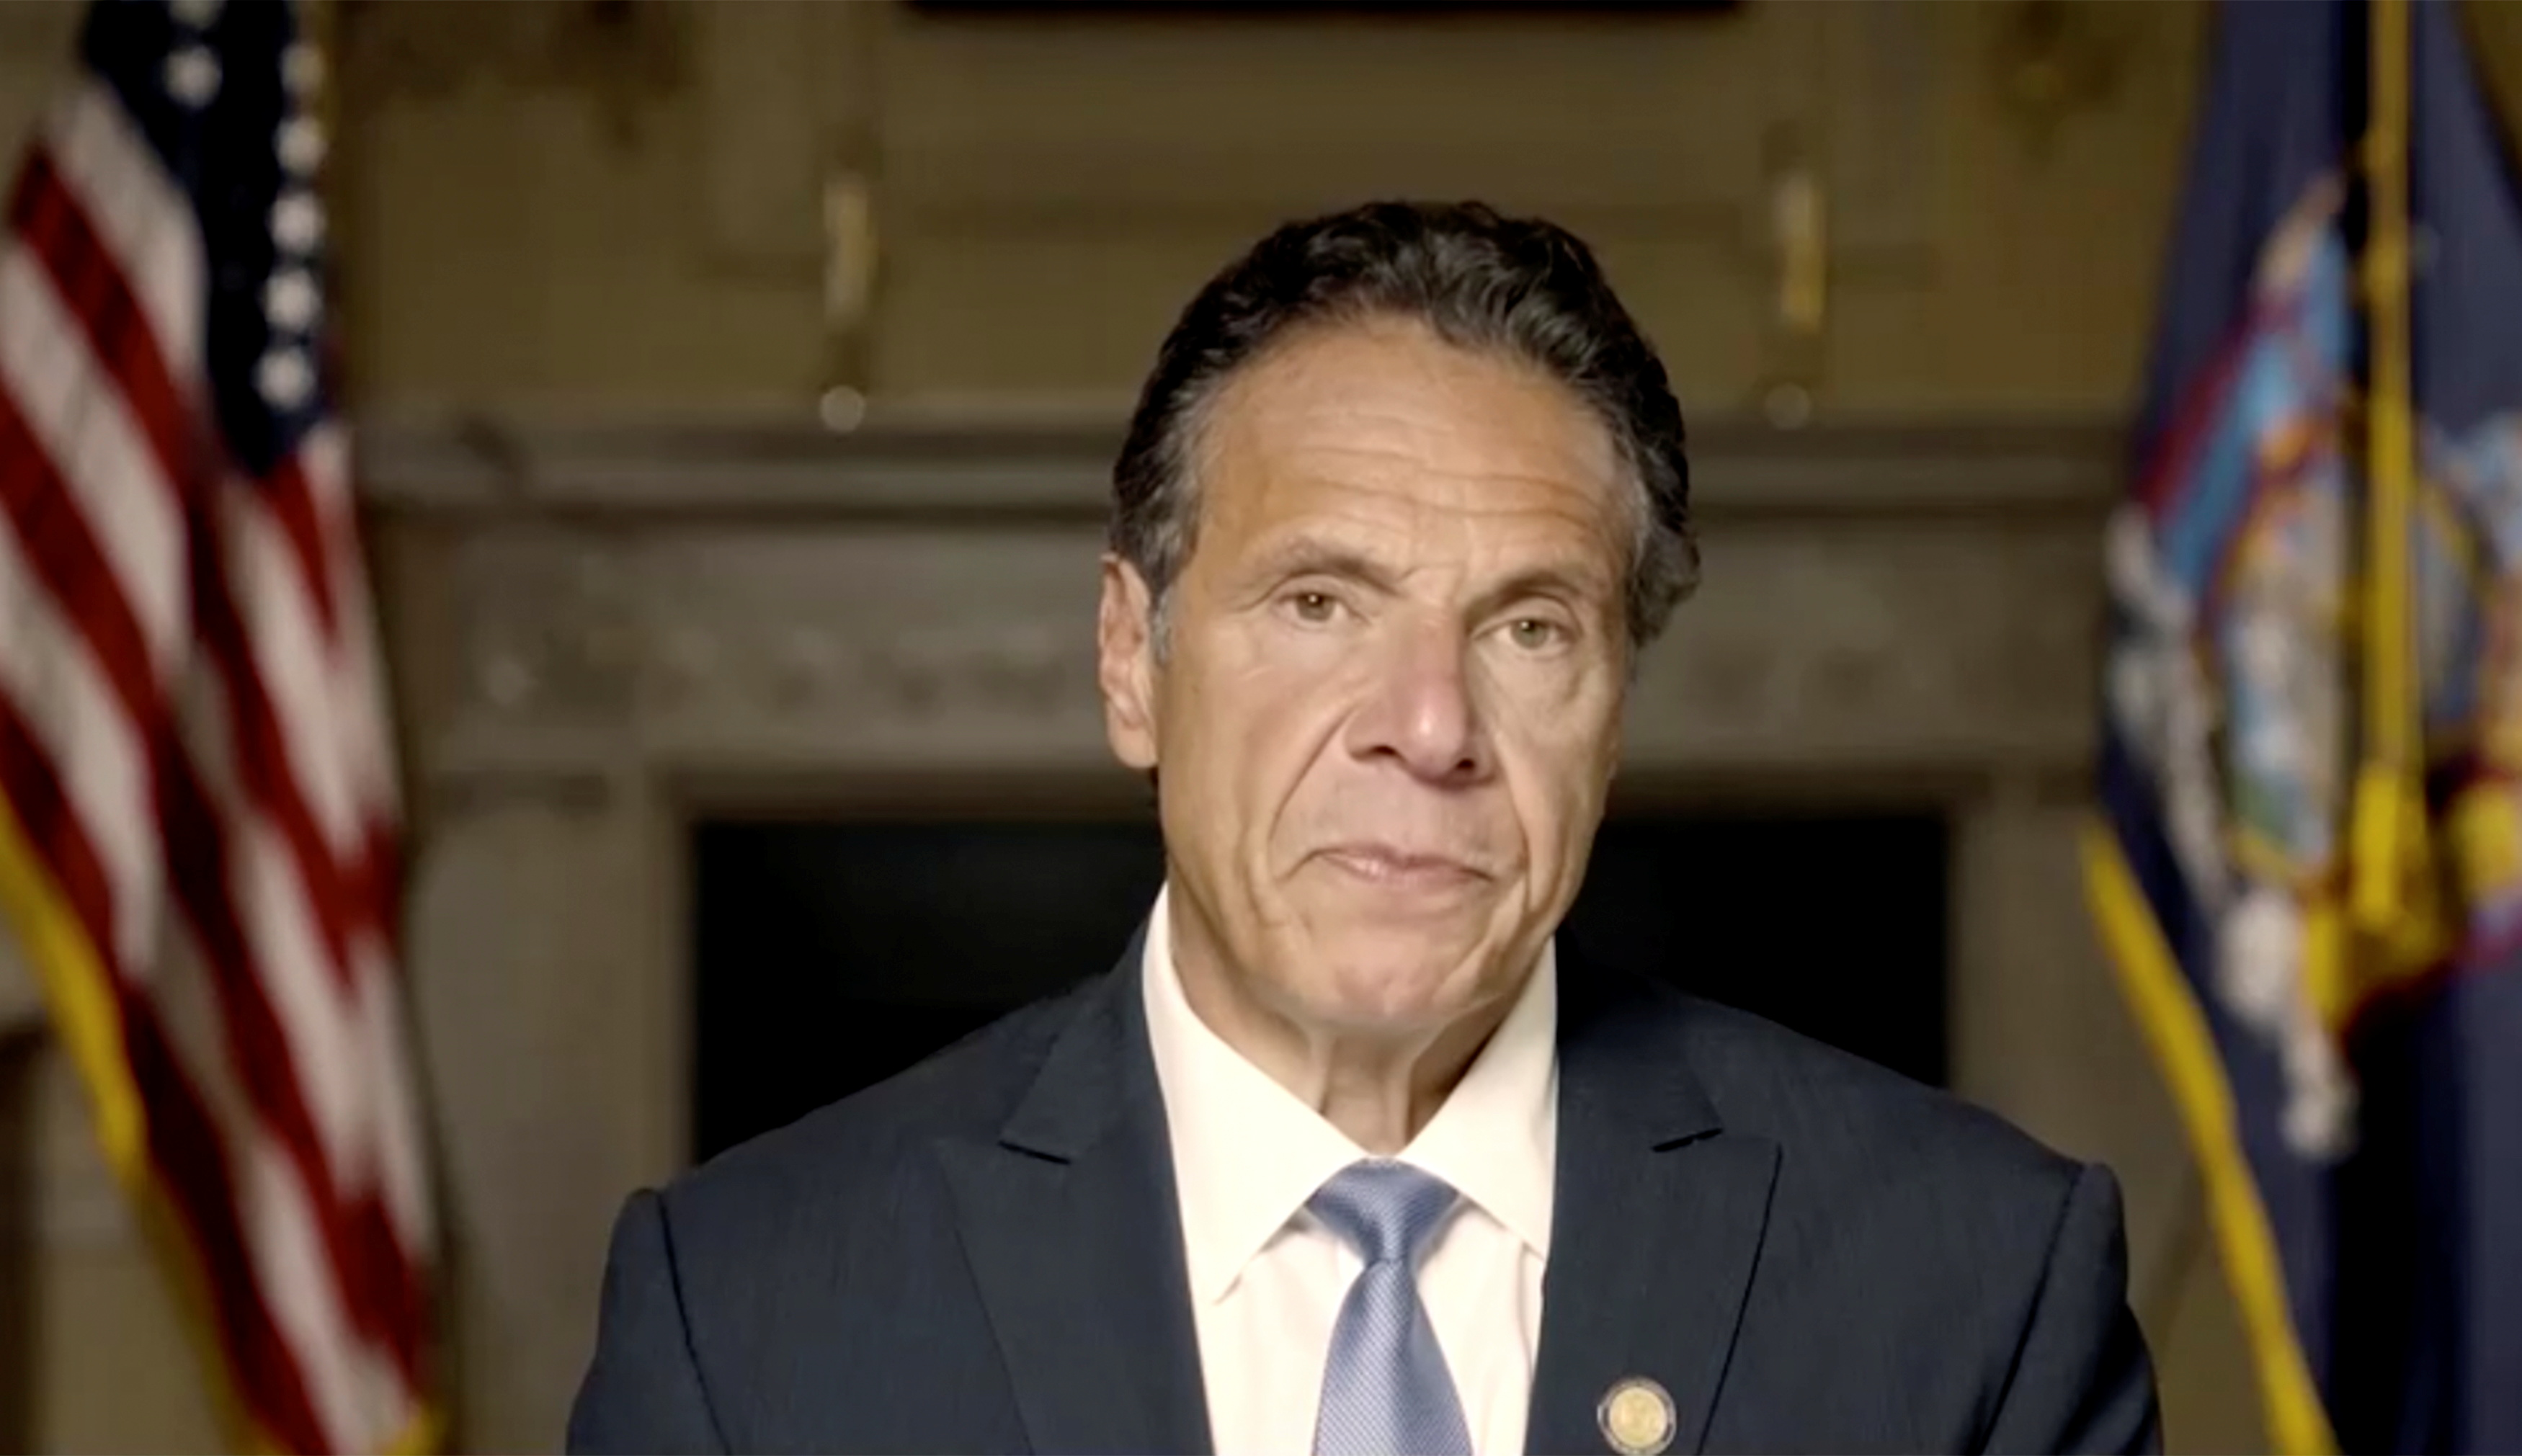 New York Governor Andrew Cuomo makes a statement in this screen grab taken from a pre-recorded video released by Office of the NY Governor, in New York, U.S., August 3, 2021.  Office of Governor Andrew M. Cuomo/Handout via REUTERS  THIS IMAGE HAS BEEN SUPPLIED BY A THIRD PARTY.